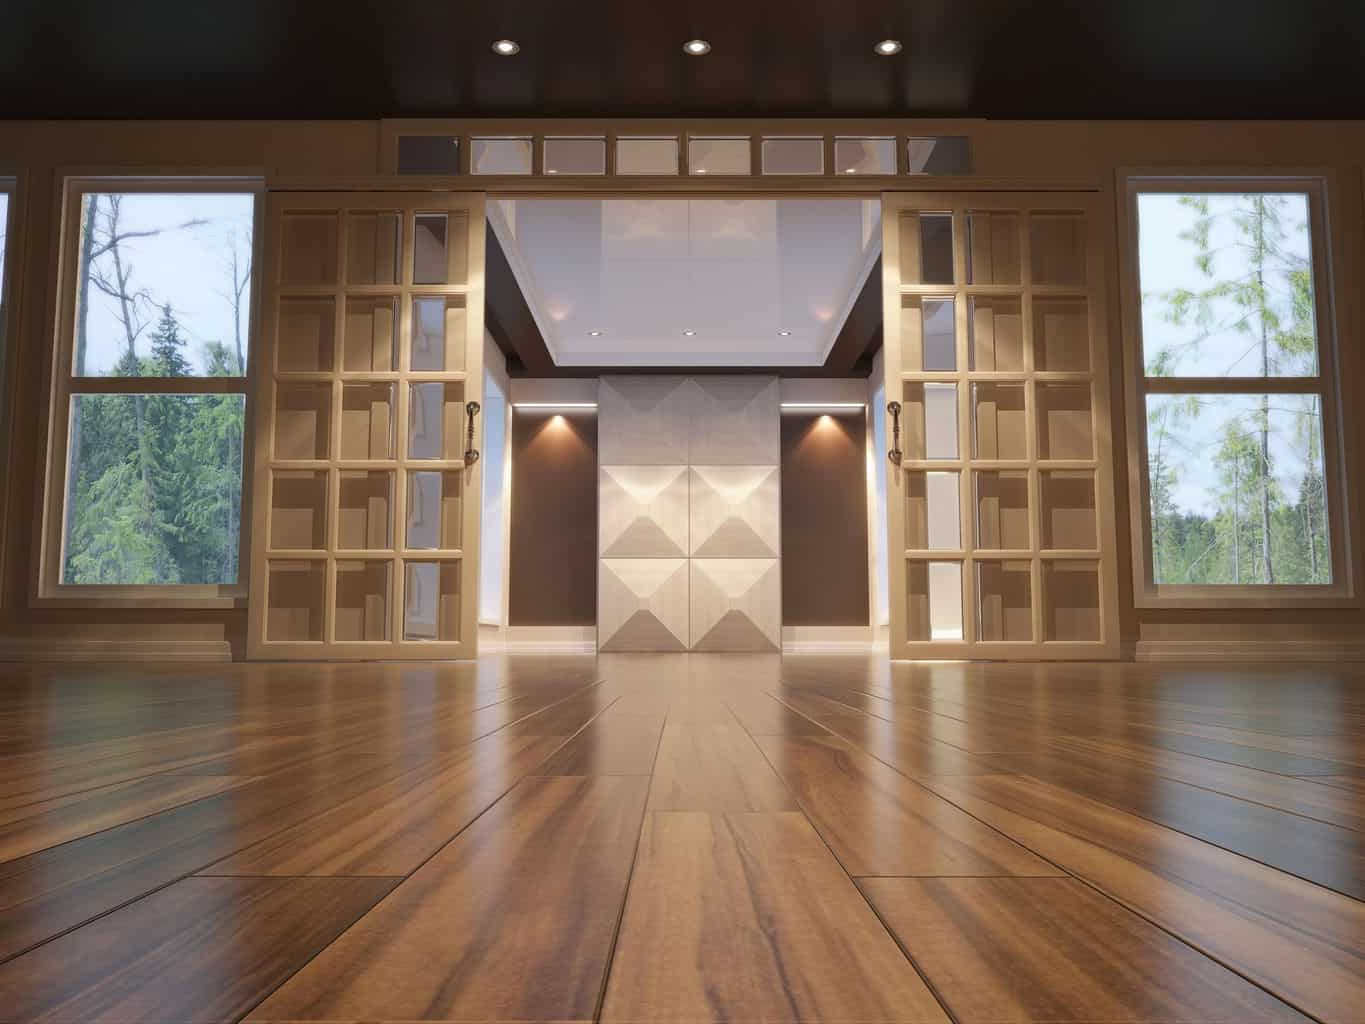 The 5 most common hardwood floor colors the flooring lady for Different colors of hardwood floors